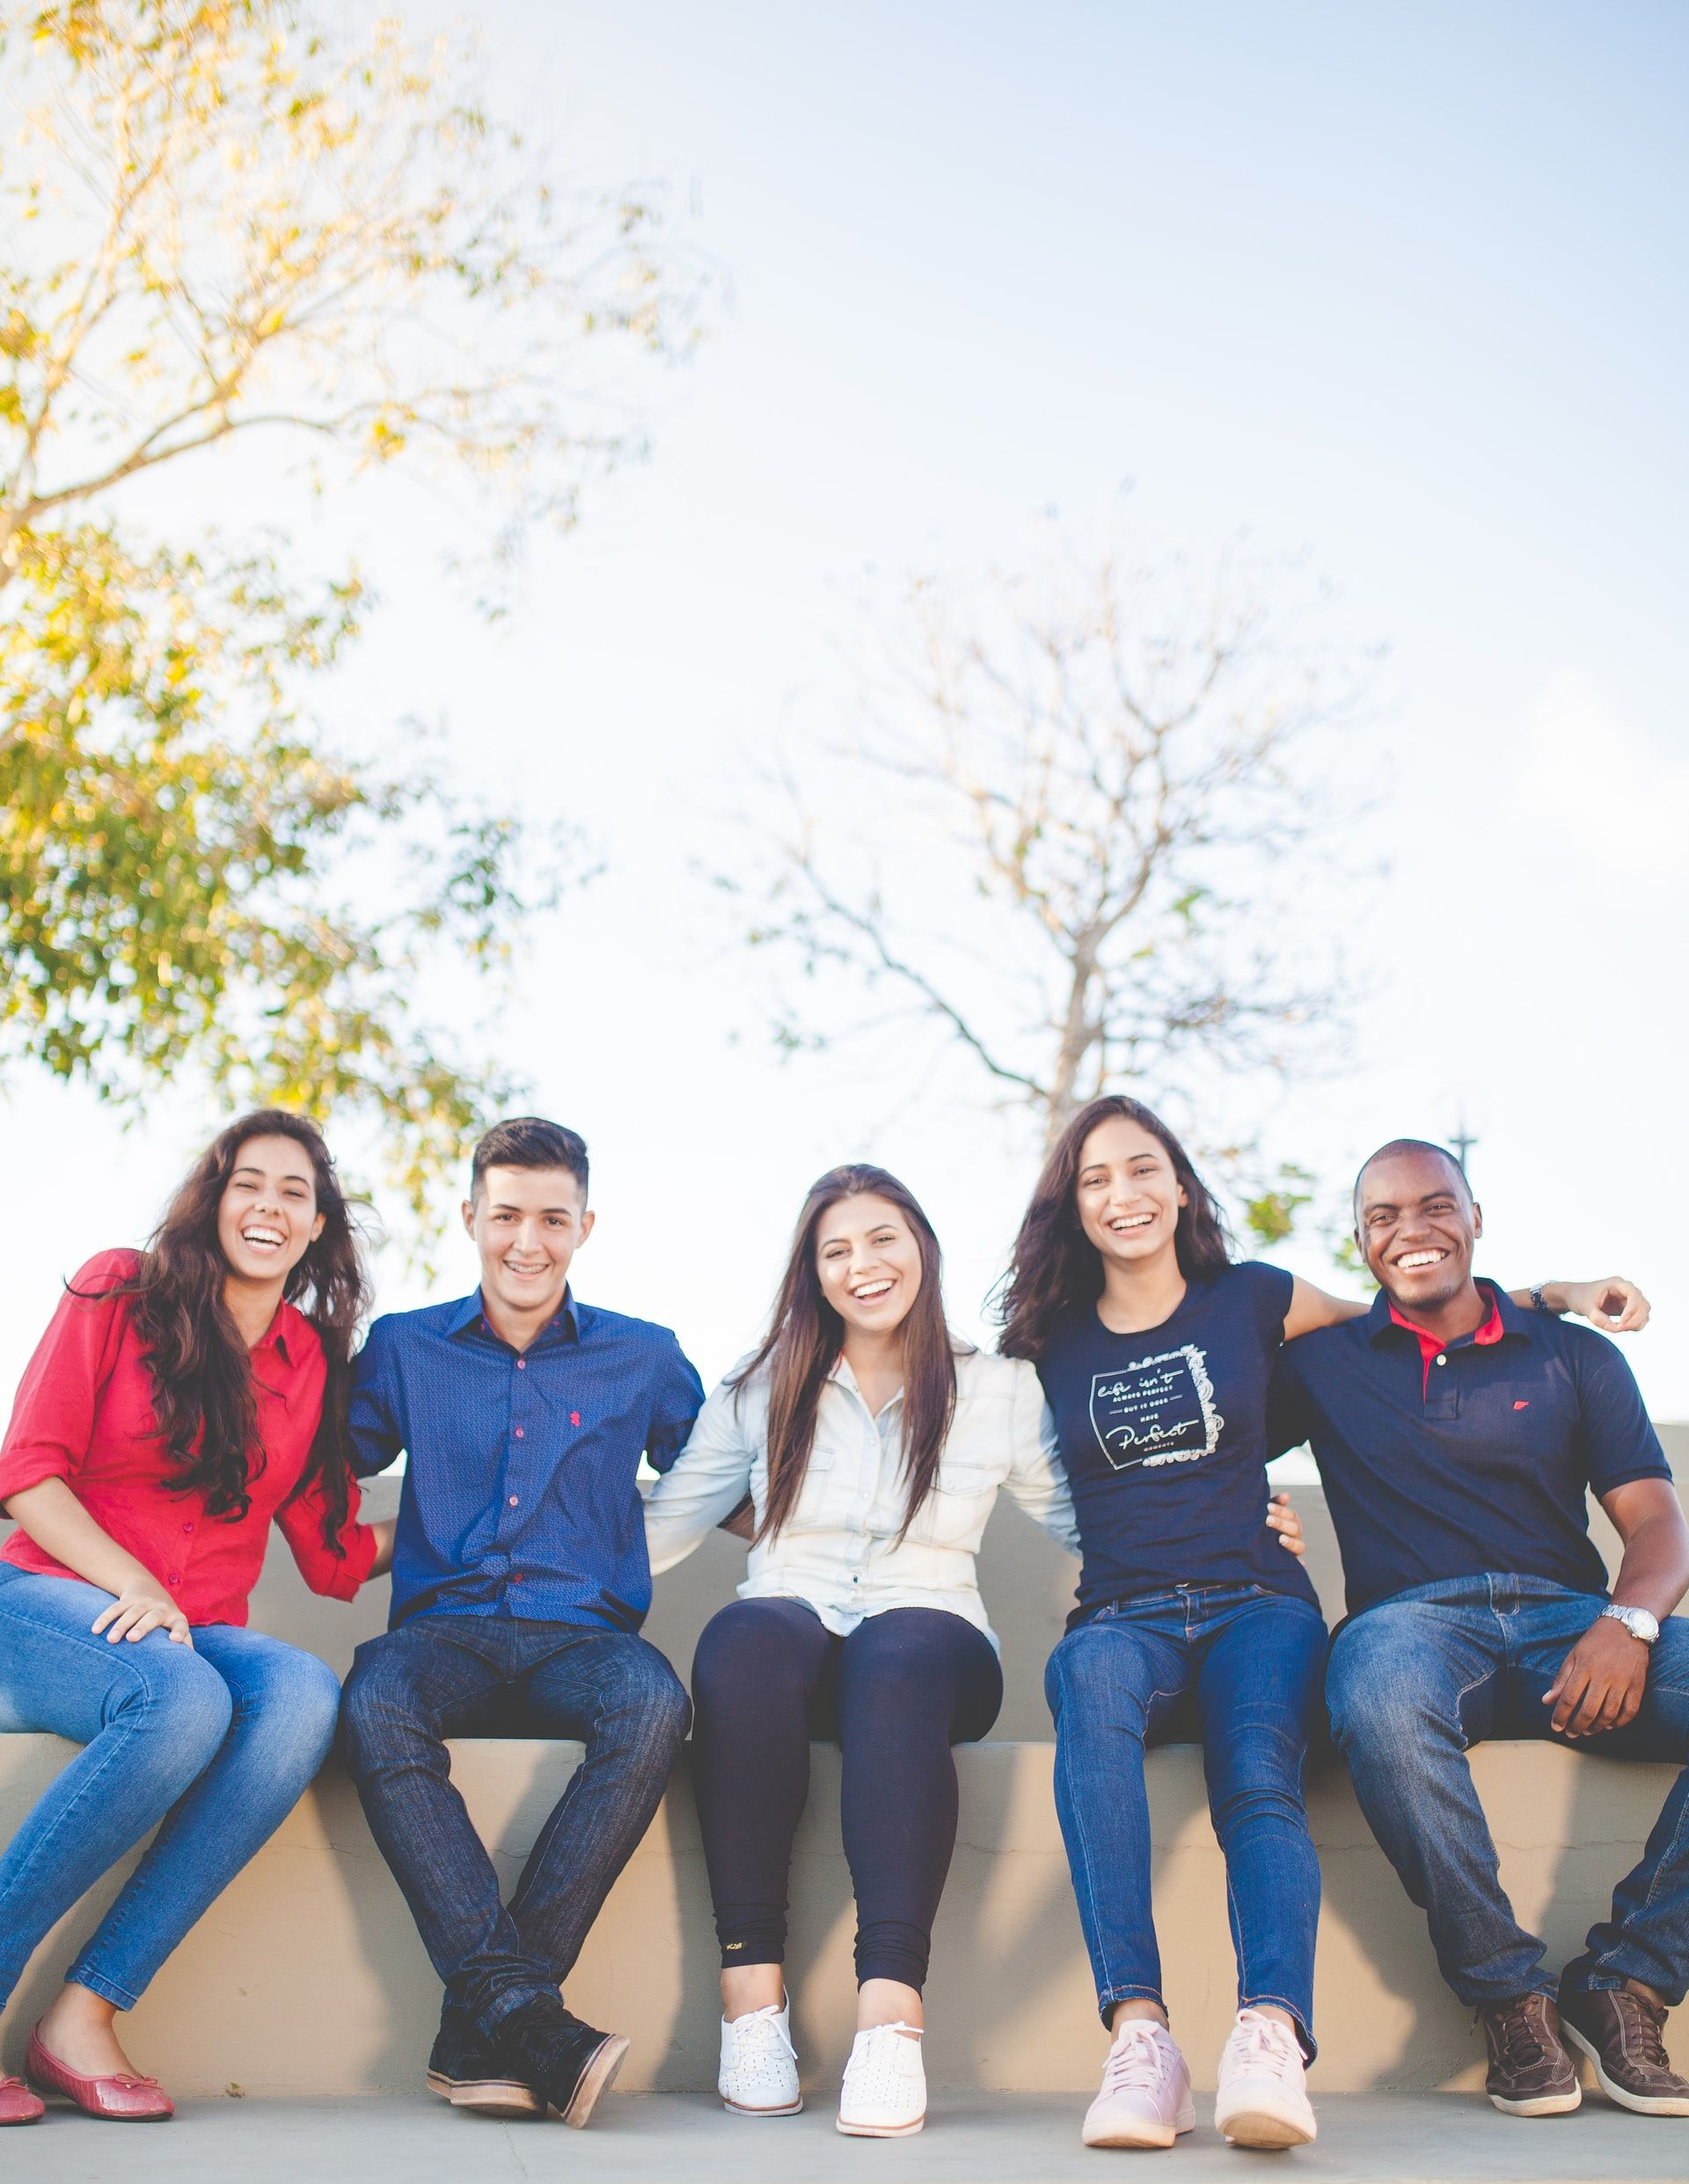 College students sitting on bench